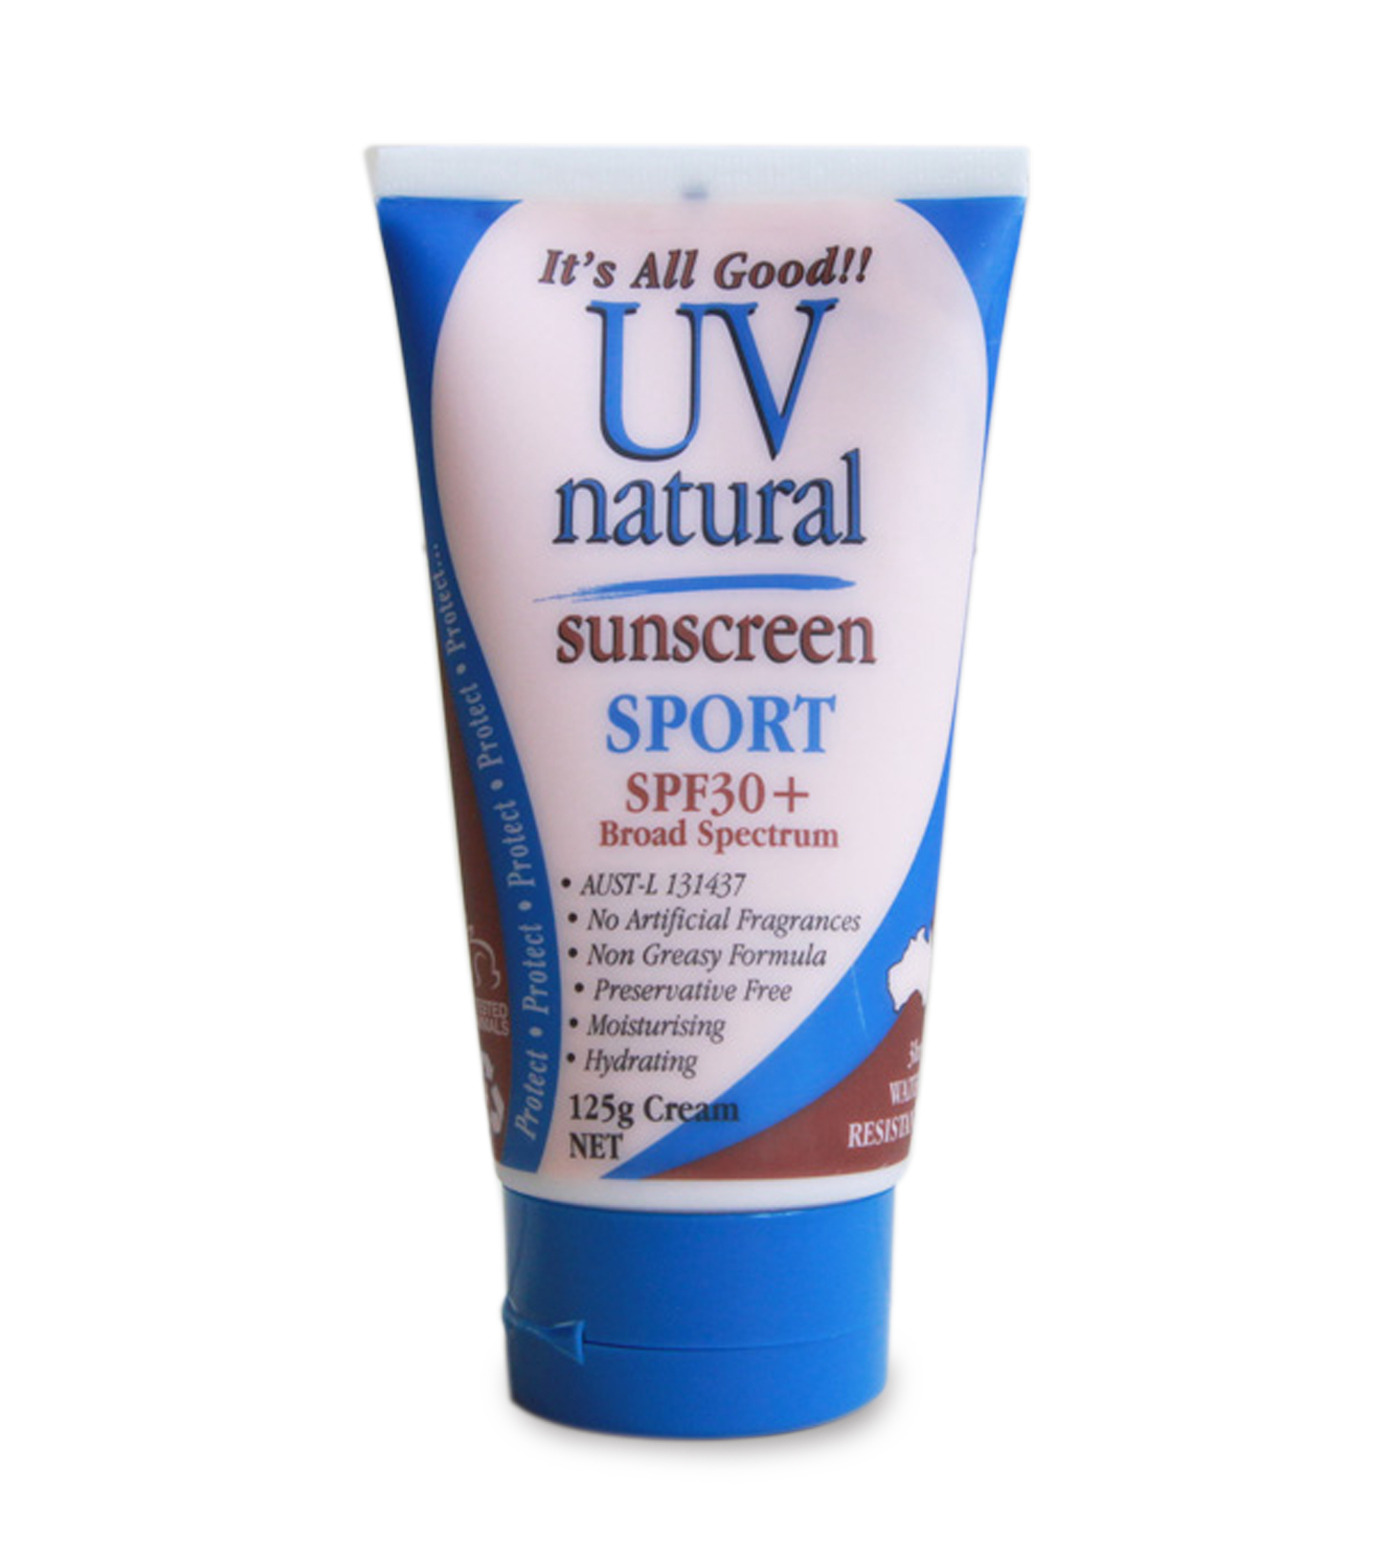 UV Natural(ユーブイ ナチュラル)のUVクリーム-BLUE(BATH-BODY-GROOMING/BATH-BODY/OUTDOOR/BATH-BODY-GROOMING/BATH / BODY/OUTDOOR)-UVN-SPORT-92 拡大詳細画像1